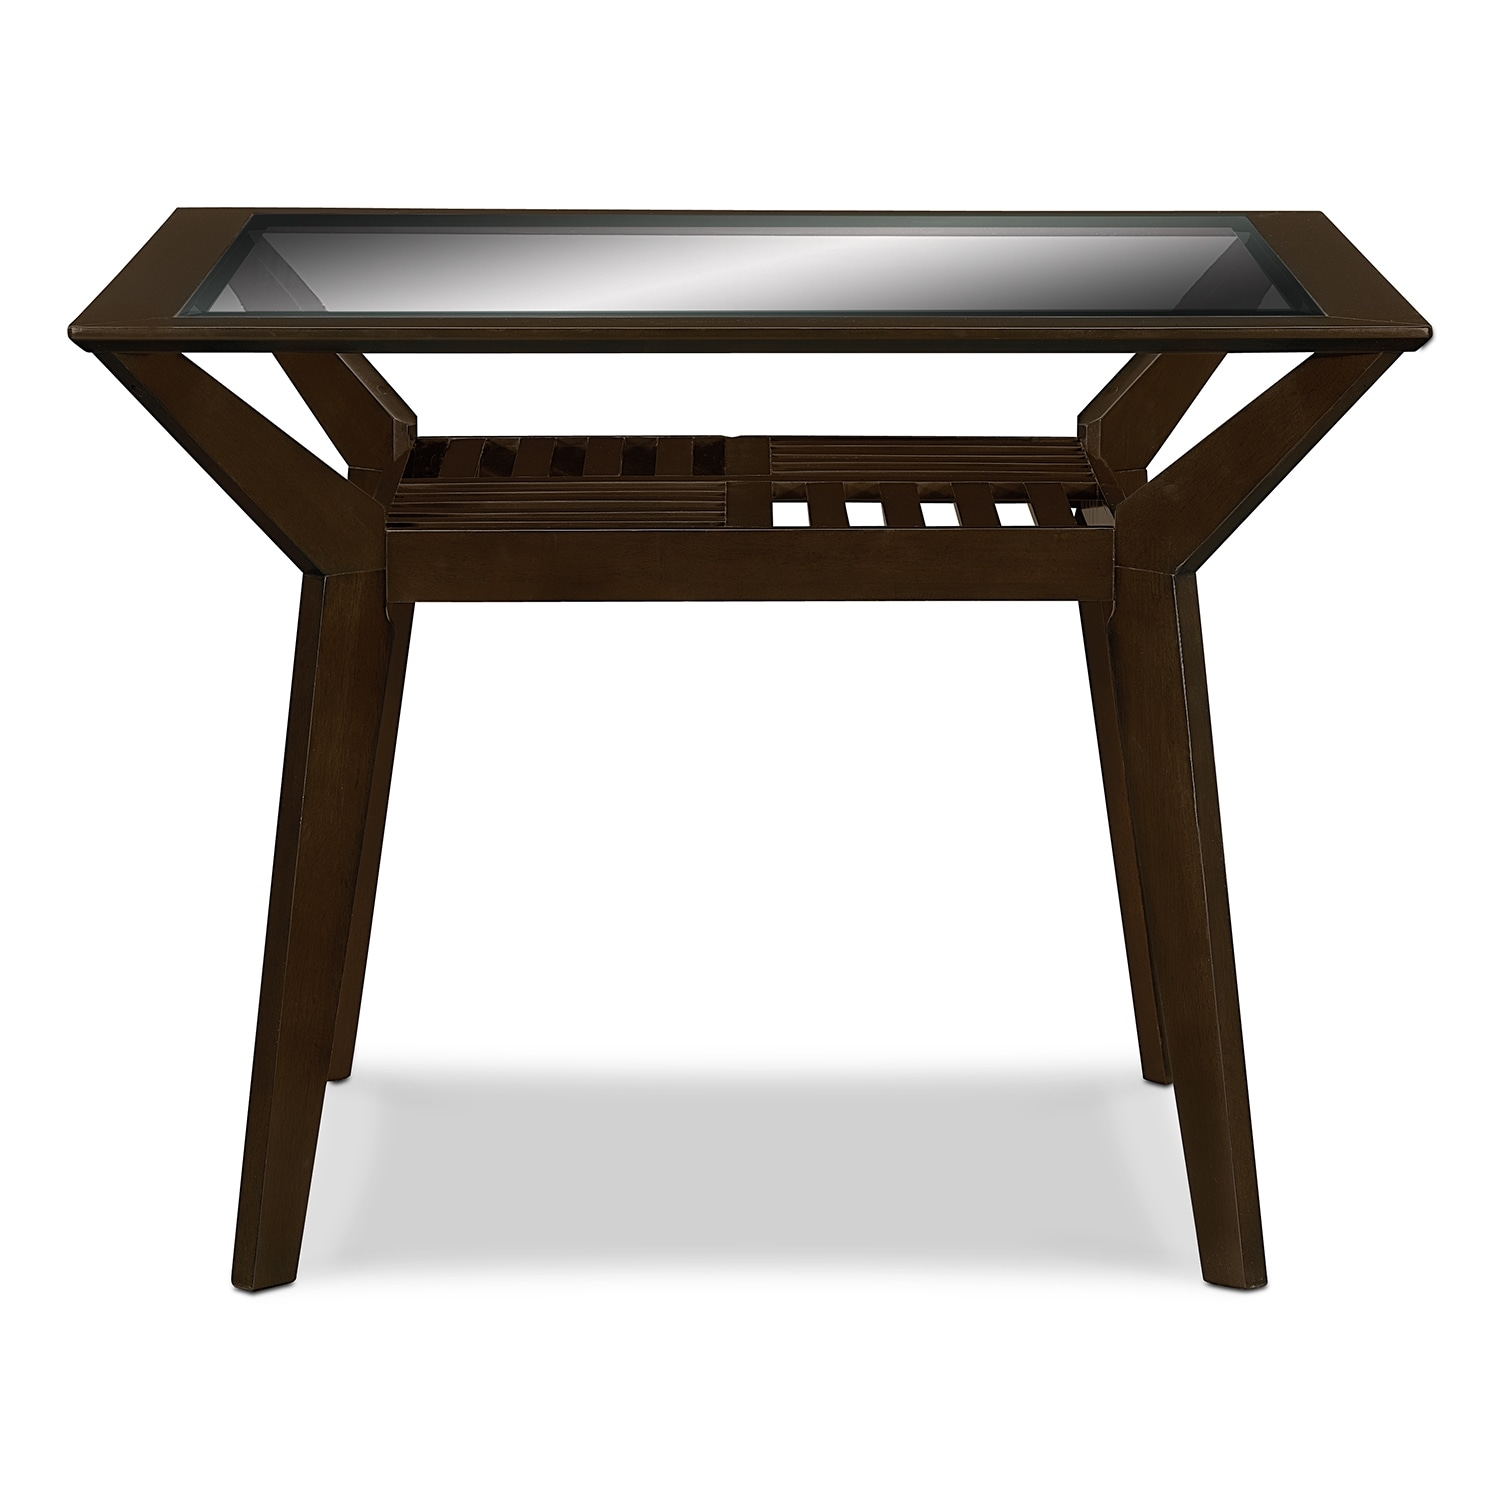 Mystic Counter Height Dining Table Merlot Value City  : 283363 from www.valuecityfurniture.com size 1500 x 1500 jpeg 124kB